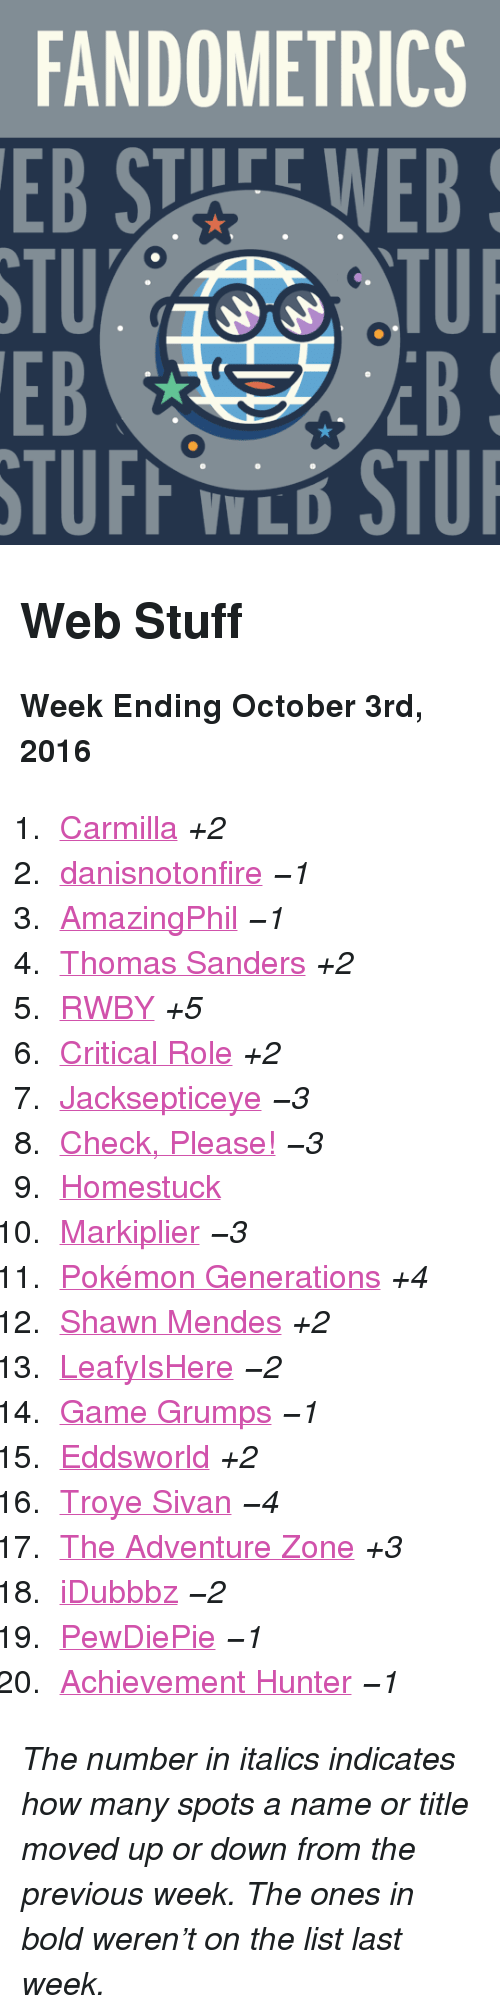 "leafyishere: FANDOMETRICS  EB STUFE WEB  STU  EB  TUI  EB  V L <h2>Web Stuff</h2><p><b>Week Ending October 3rd, 2016</b></p><ol><li><a href=""http://www.tumblr.com/search/carmilla"">Carmilla</a> <i>+2</i></li>  <li><a href=""http://www.tumblr.com/search/danisnotonfire"">danisnotonfire</a> <i><i><i><i>−1</i></i></i></i></li>  <li><a href=""http://www.tumblr.com/search/amazingphil"">AmazingPhil</a> <i><i><i><i>−1</i></i></i></i></li>  <li><a href=""http://www.tumblr.com/search/thomas%20sanders"">Thomas Sanders</a> <i>+2</i></li>  <li><a href=""http://www.tumblr.com/search/rwby"">RWBY</a> <i>+5</i></li>  <li><a href=""http://www.tumblr.com/search/critical%20role"">Critical Role</a> <i>+2</i></li>  <li><a href=""http://www.tumblr.com/search/jacksepticeye"">Jacksepticeye</a> <i><i><i><i>−3</i></i></i></i></li>  <li><a href=""http://www.tumblr.com/search/omgcheckplease"">Check, Please!</a> <i><i><i><i>−3</i></i></i></i></li>  <li><a href=""http://www.tumblr.com/search/homestuck"">Homestuck</a></li>  <li><a href=""http://www.tumblr.com/search/markiplier"">Markiplier</a> <i><i><i><i>−3</i></i></i></i></li>  <li><a href=""http://www.tumblr.com/search/pokemon%20generations"">Pokémon Generations</a> <i>+4</i></li>  <li><a href=""http://www.tumblr.com/search/shawn%20mendes"">Shawn Mendes</a> <i>+2</i></li>  <li><a href=""http://www.tumblr.com/search/leafyishere"">LeafyIsHere</a> <i><i><i><i>−2</i></i></i></i></li>  <li><a href=""http://www.tumblr.com/search/game%20grumps"">Game Grumps</a> <i><i><i><i>−1</i></i></i></i></li>  <li><a href=""http://www.tumblr.com/search/eddsworld"">Eddsworld</a> <i>+2</i></li>  <li><a href=""http://www.tumblr.com/search/troye%20sivan"">Troye Sivan</a> <i><i><i><i>−4</i></i></i></i></li>  <li><a href=""http://www.tumblr.com/search/the%20adventure%20zone"">The Adventure Zone</a> <i>+3</i></li>  <li><a href=""http://www.tumblr.com/search/idubbbz"">iDubbbz</a> <i><i><i><i>−2</i></i></i></i></li>  <li><a href=""http://www.tumblr.com/search/pewdiepie"">PewDiePie</a> <i><i><i><i>−1</i></i></i></i></li>  <li><a href=""http://www.tumblr.com/search/achievement%20hunter"">Achievement Hunter</a> <i><i><i><i>−1</i></i></i></i></li></ol><p><i>The number in italics indicates how many spots a name or title moved up or down from the previous week. The ones in bold weren't on the list last week.</i></p>"